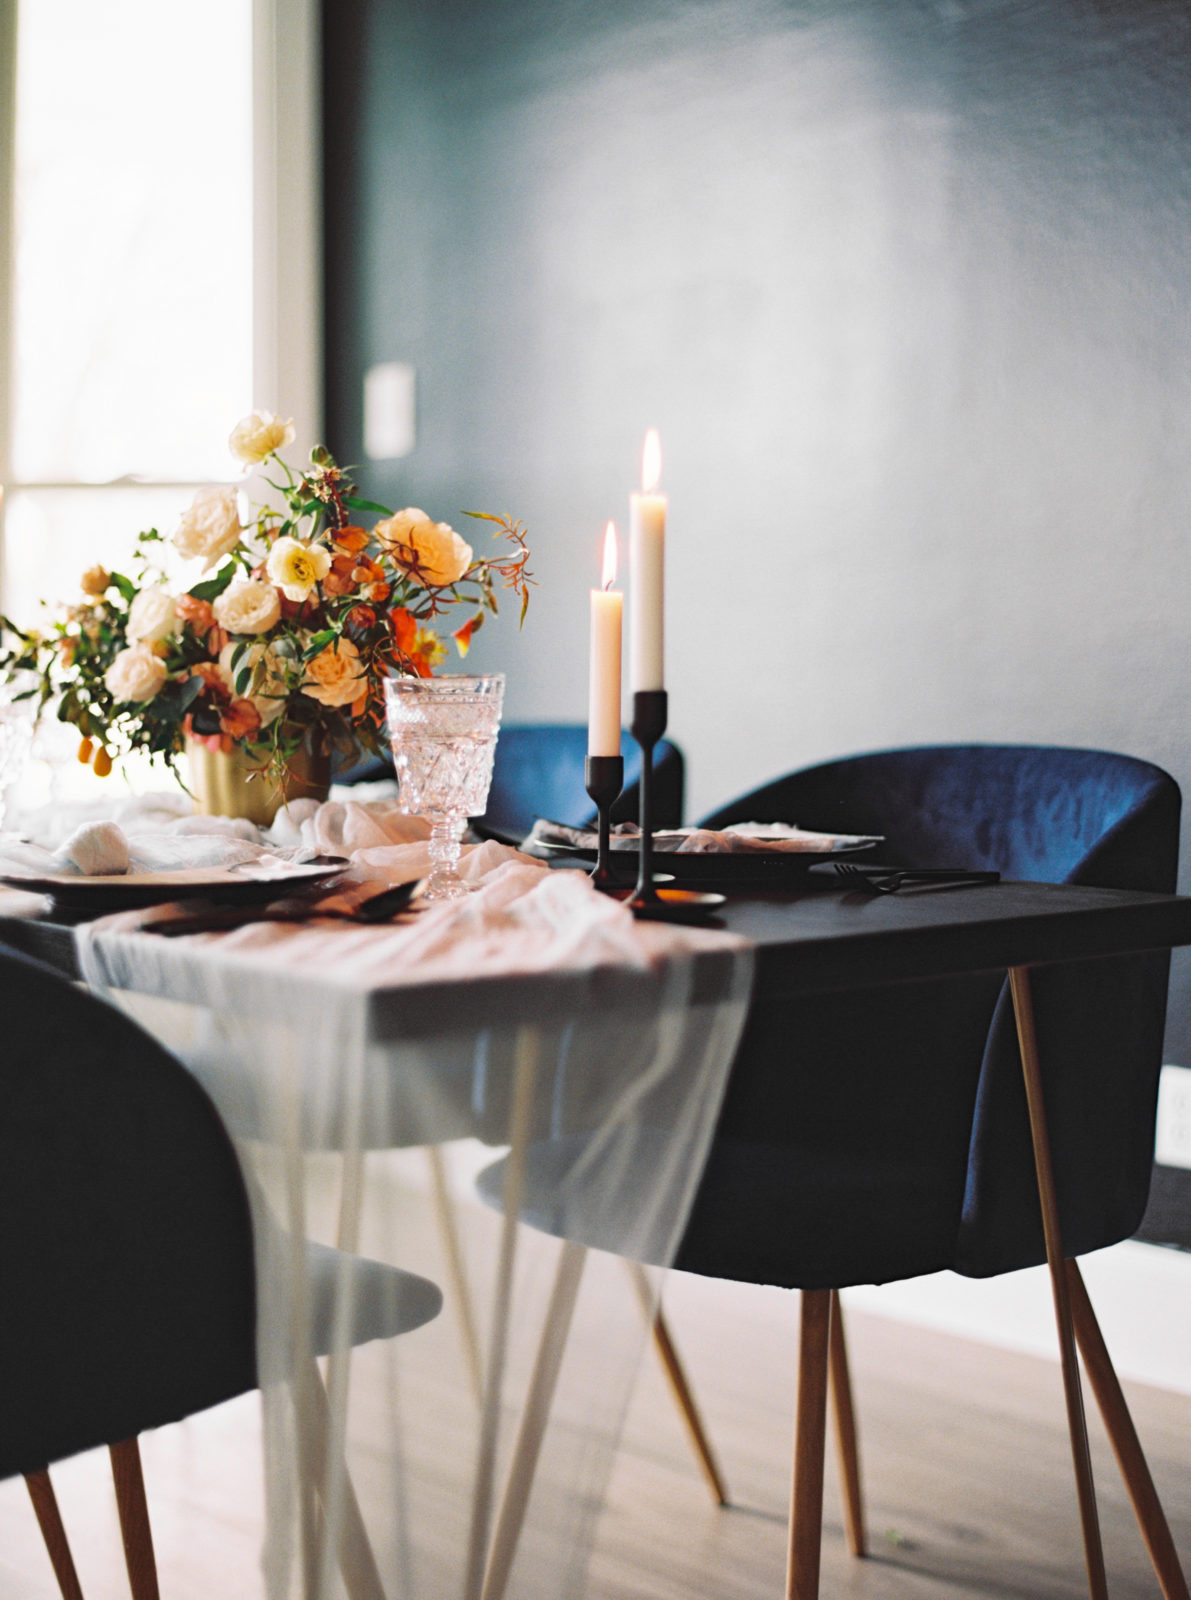 Wedding table decor inspiration with navy blue chair featured on Alexa Kay Events